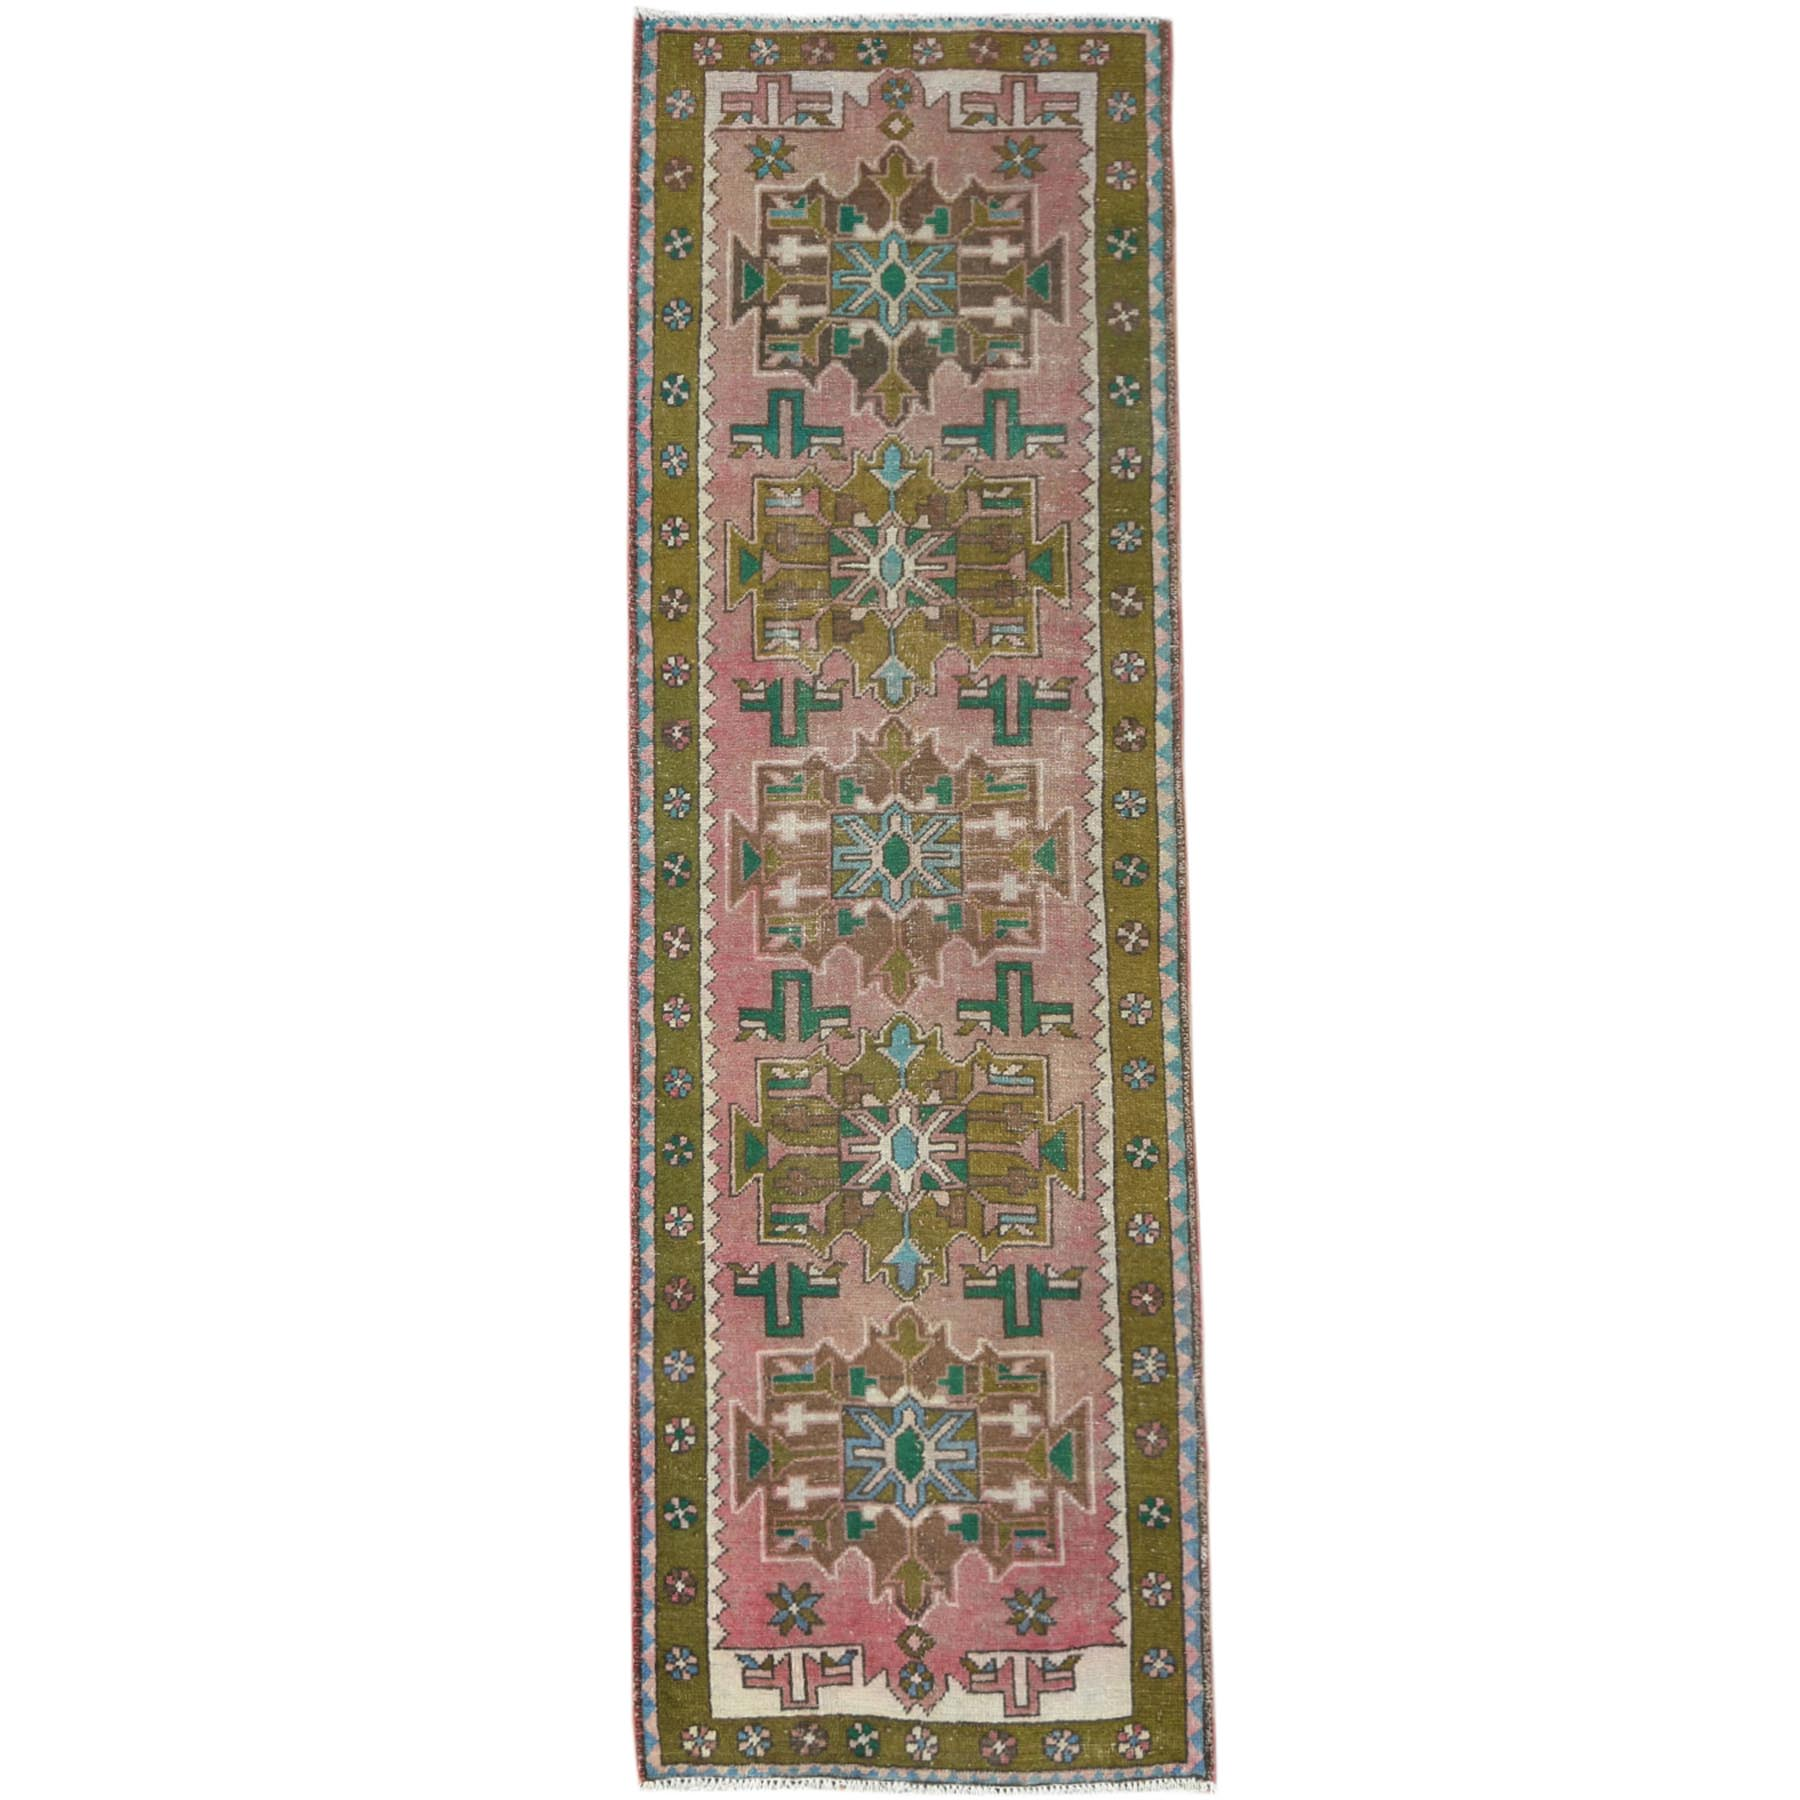 "3'2""x9'6"" Vintage Pink Persian Karajeh Cropped Thin Pile Clean Hand Knotted Organic Wool Oriental Runner Rug"